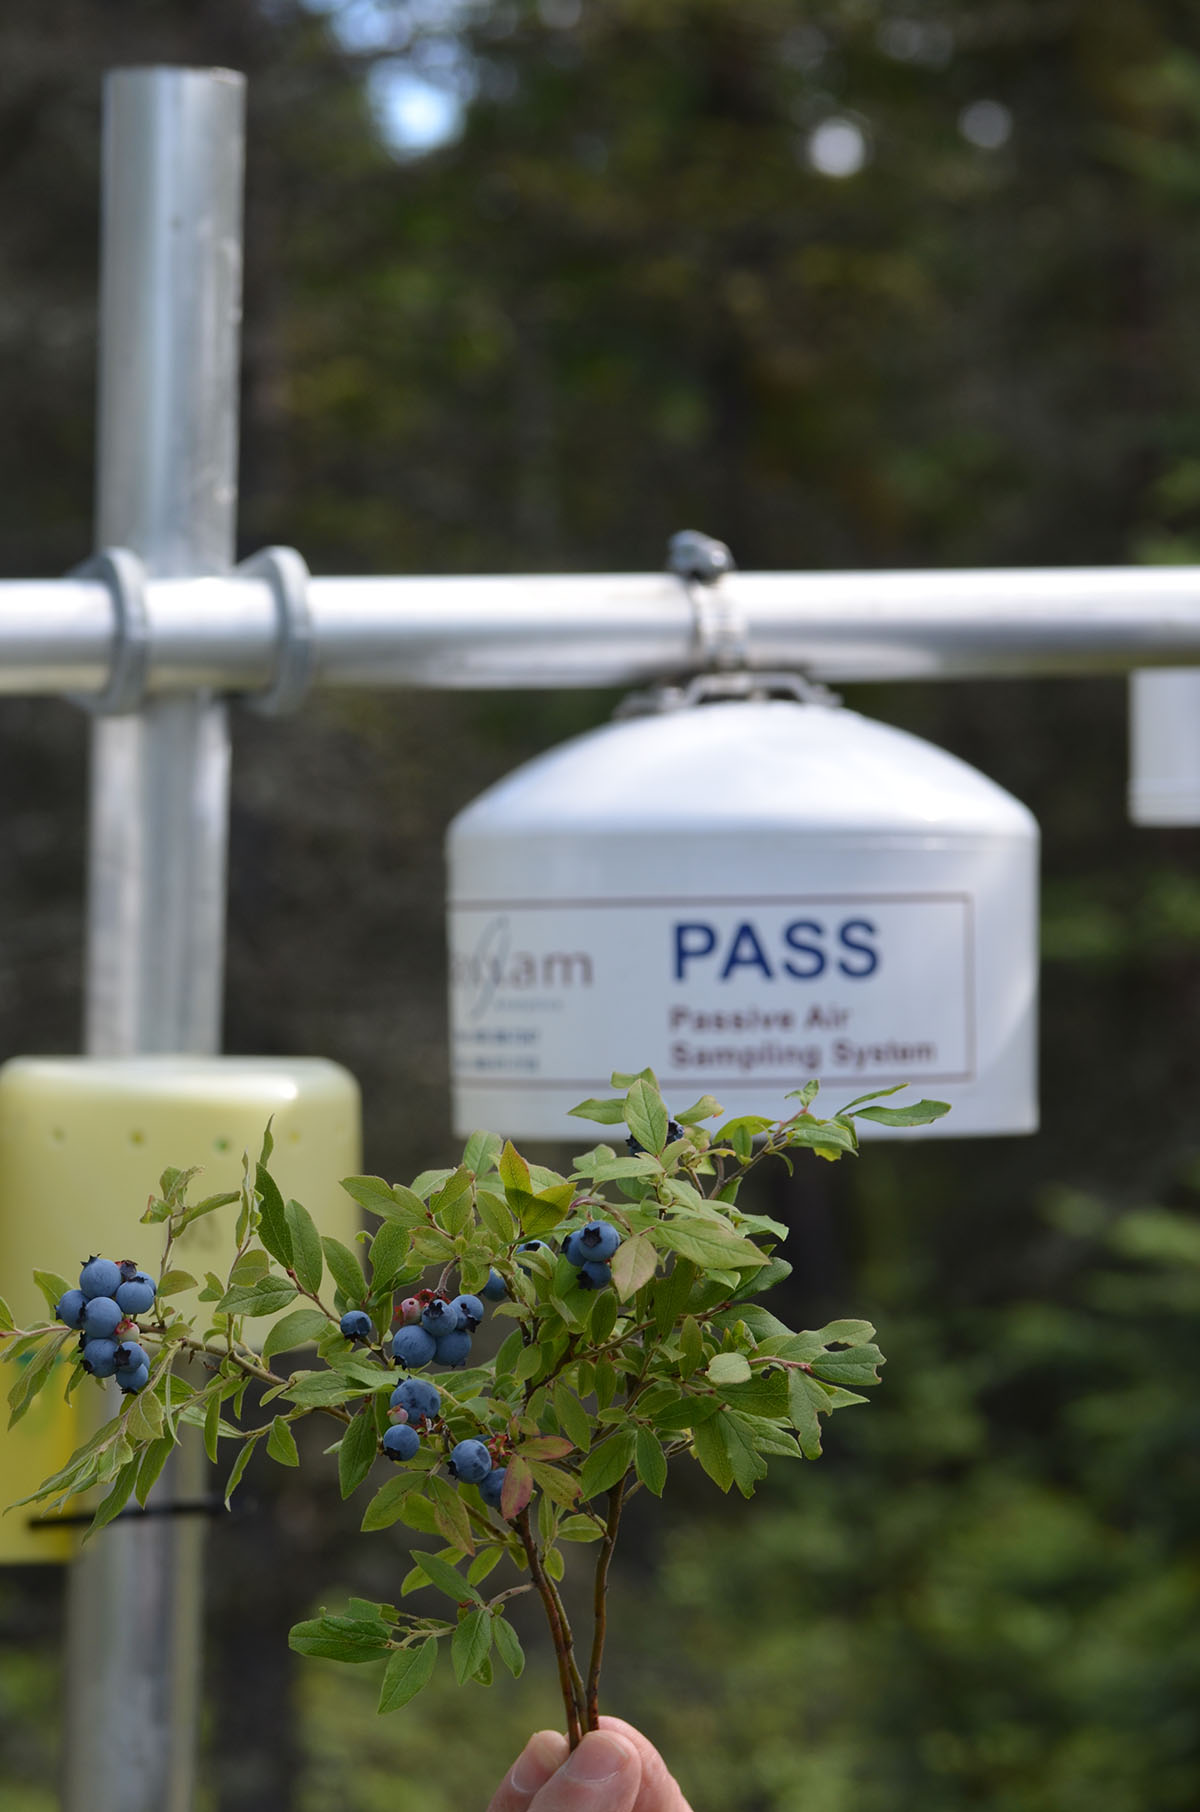 Passive air pollution monitors were installed at five berry patches, at the request of the Berry Focus Group, in 2014.